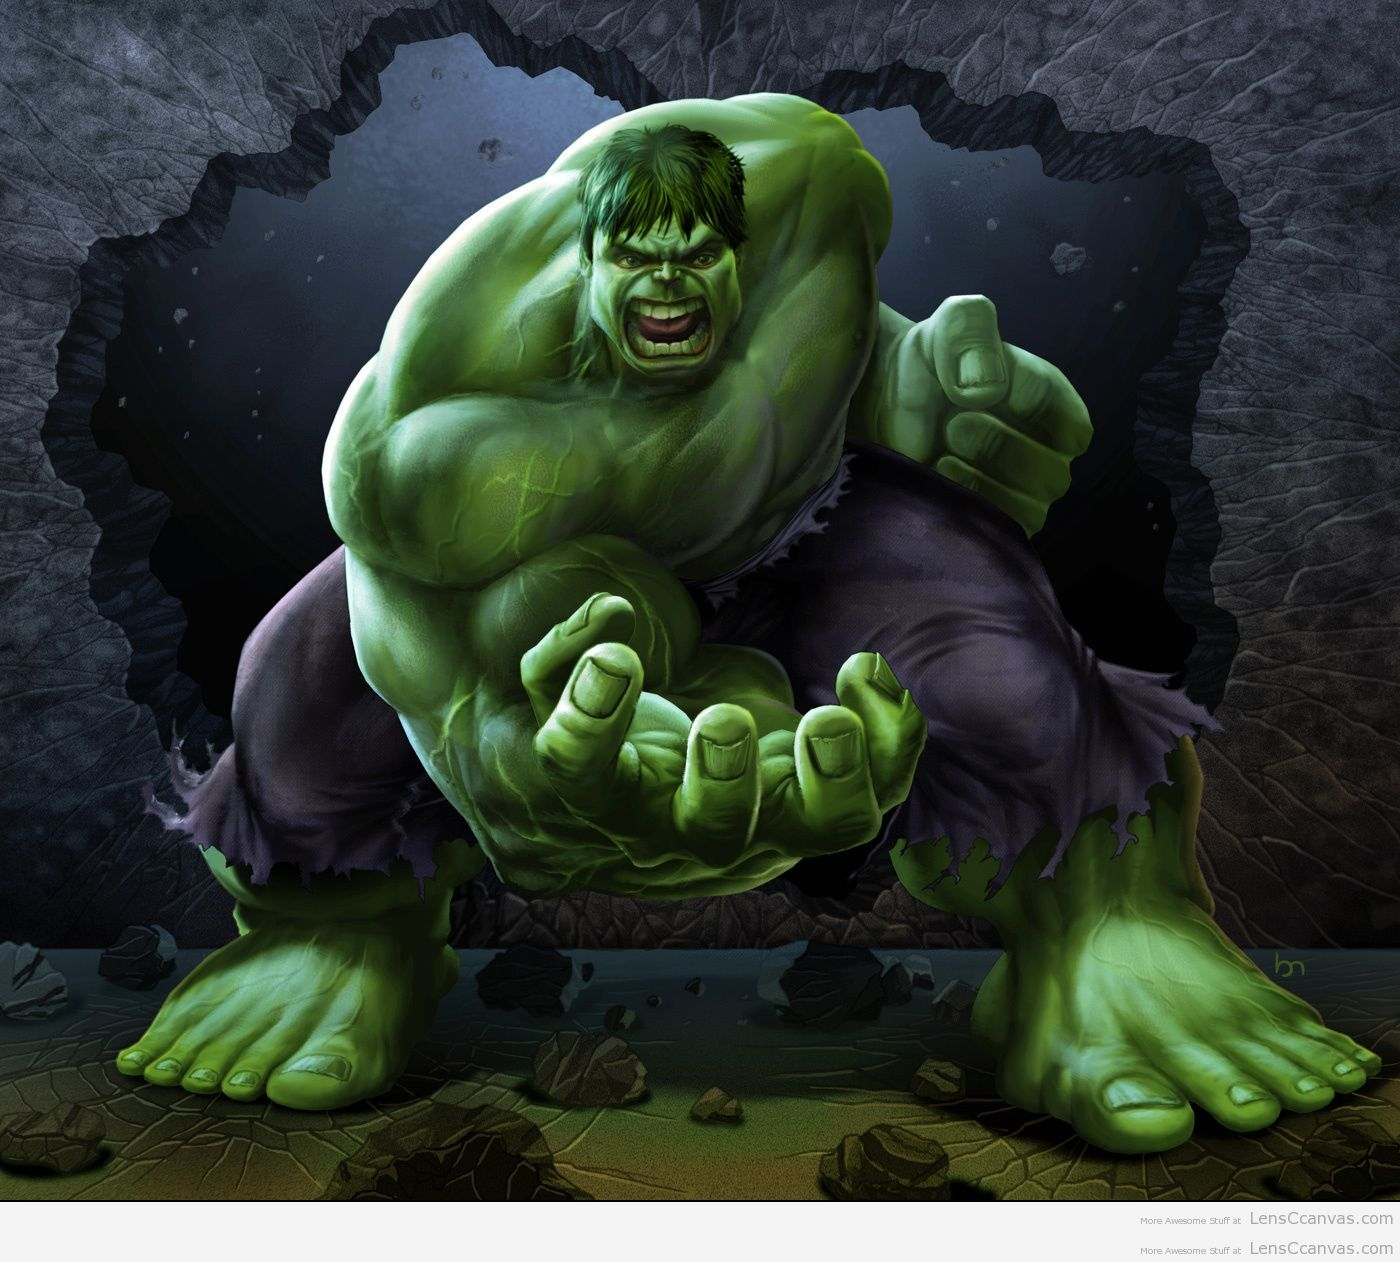 Free Download The Incredible Hulk Hd Wallpaper 1400x1262 For